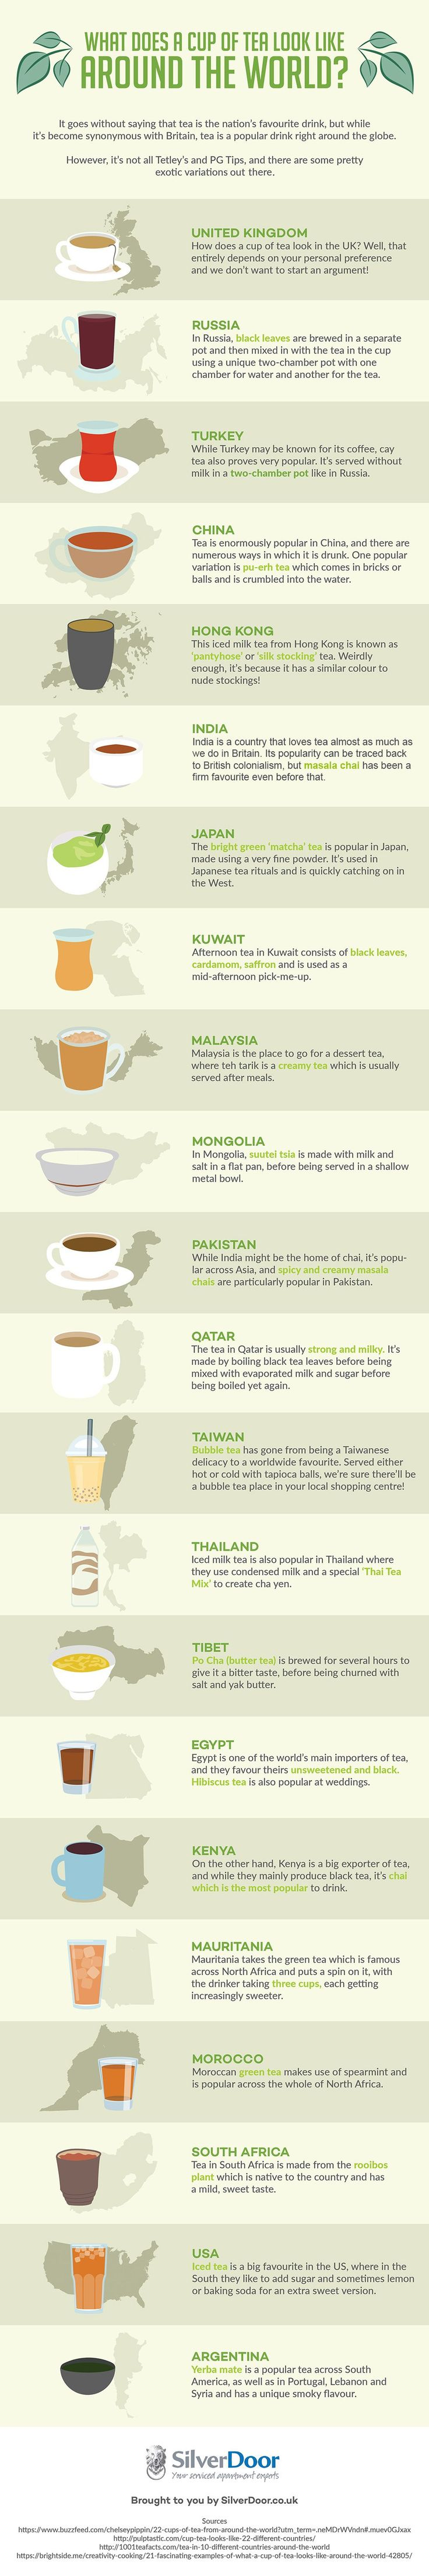 We do love a good brew! This infographic is super cool! Which ones have you tried? What Does A Cup Of Tea Look Like Around The World? #Infographic #Tea #Travel